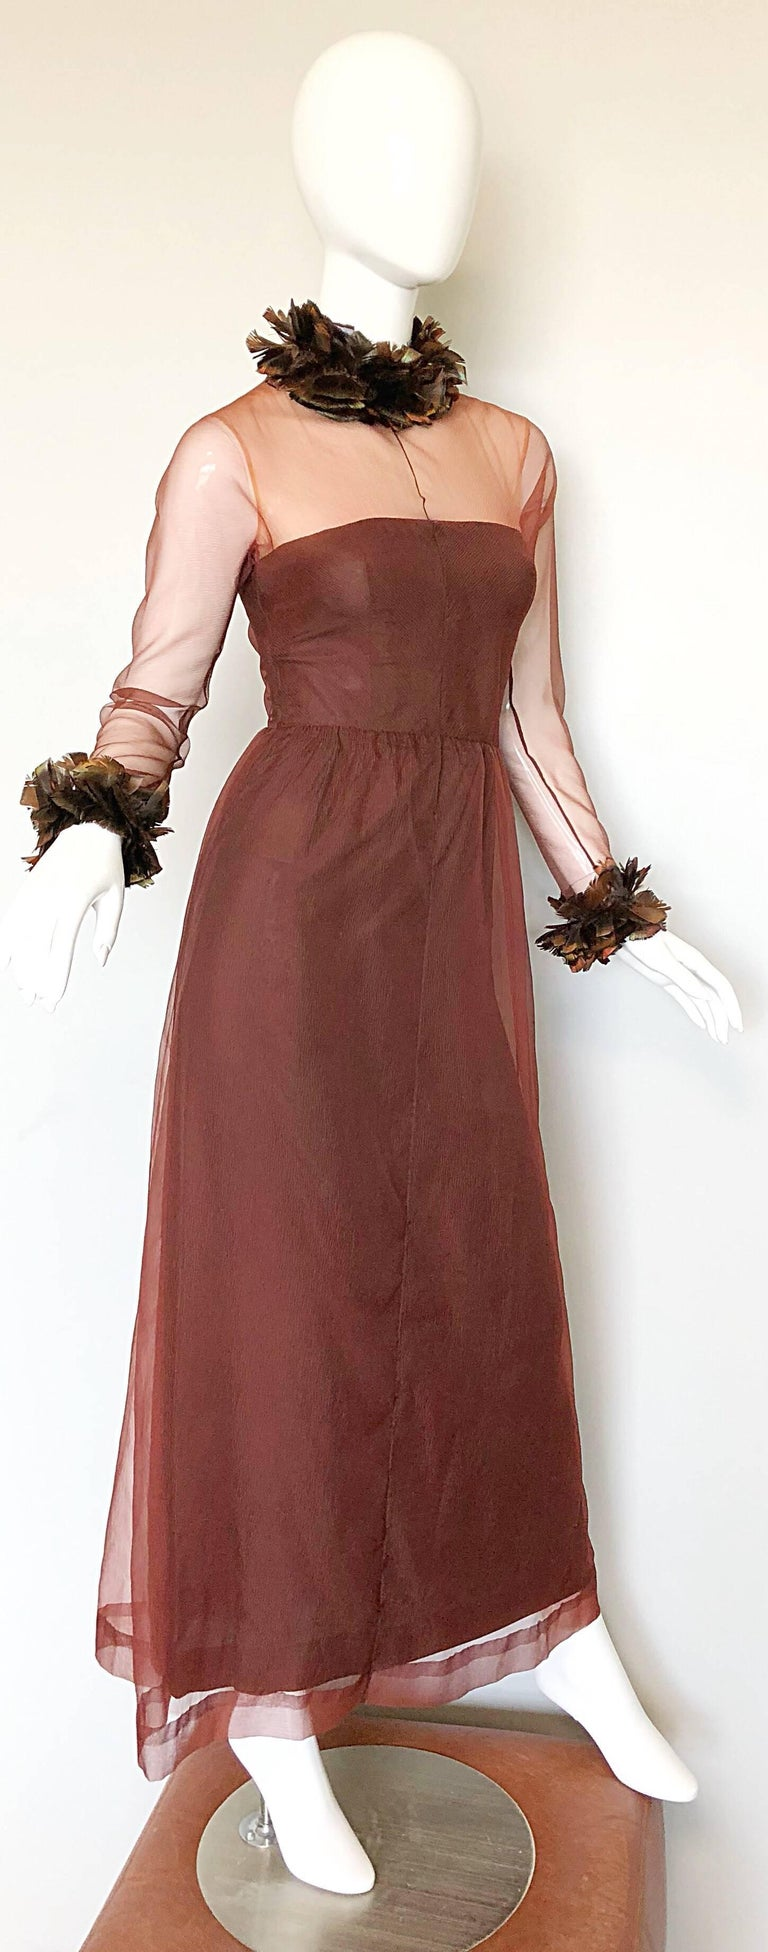 Vintage Givenchy Couture Numbered 1960s Chocolate Brown Feathered Chiffon Gown For Sale 2